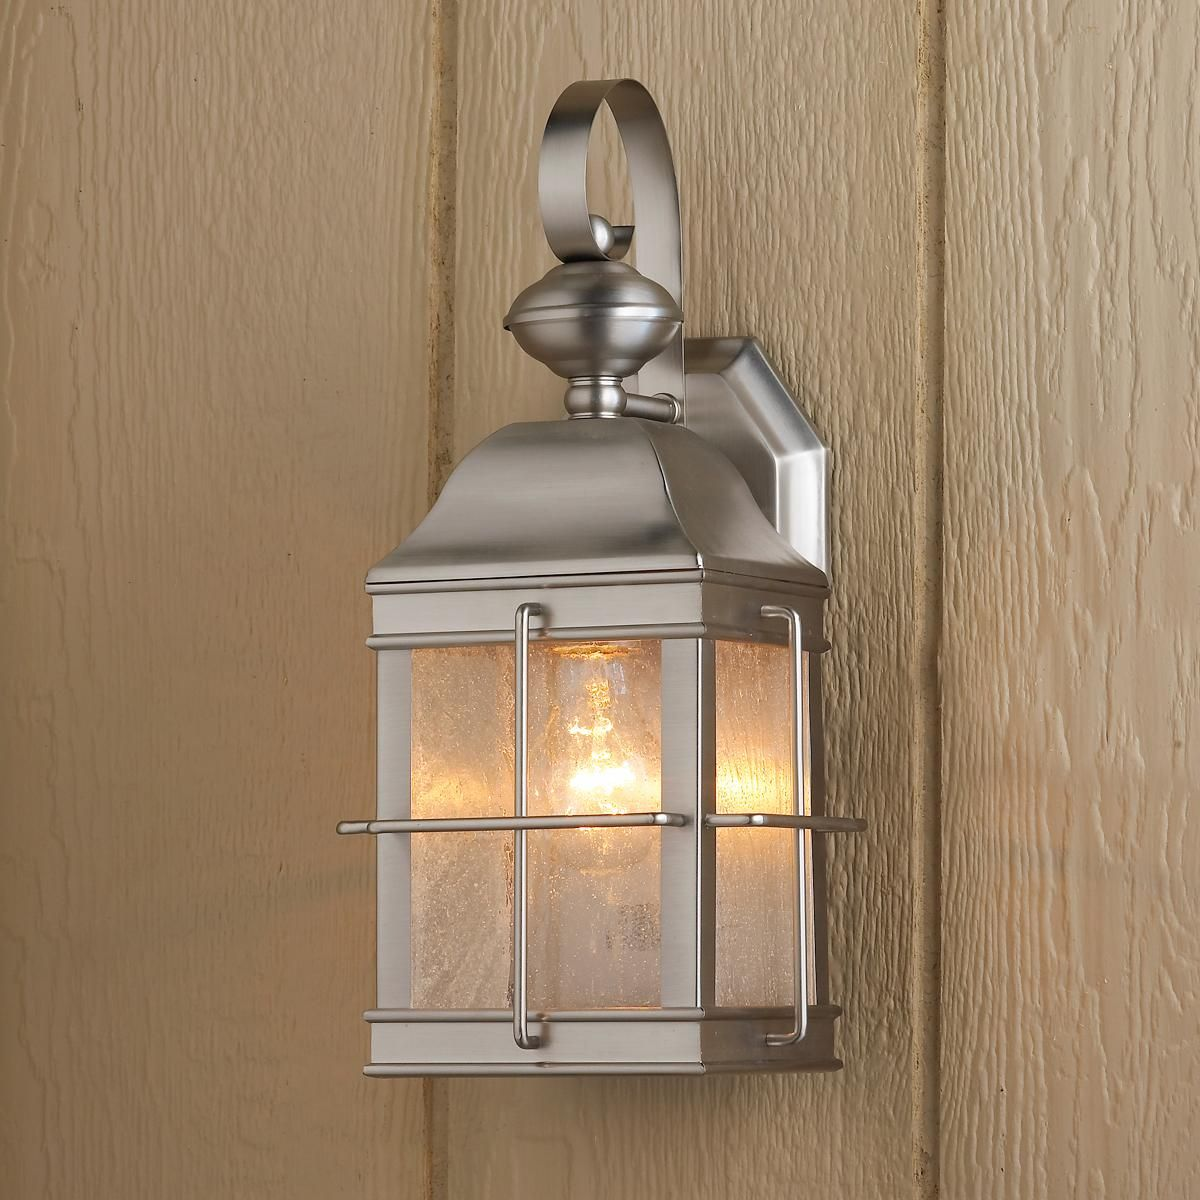 nautical inspired lantern outdoor wall light nautical lanterns nautical lantern outdoor wall light for the basement entrance